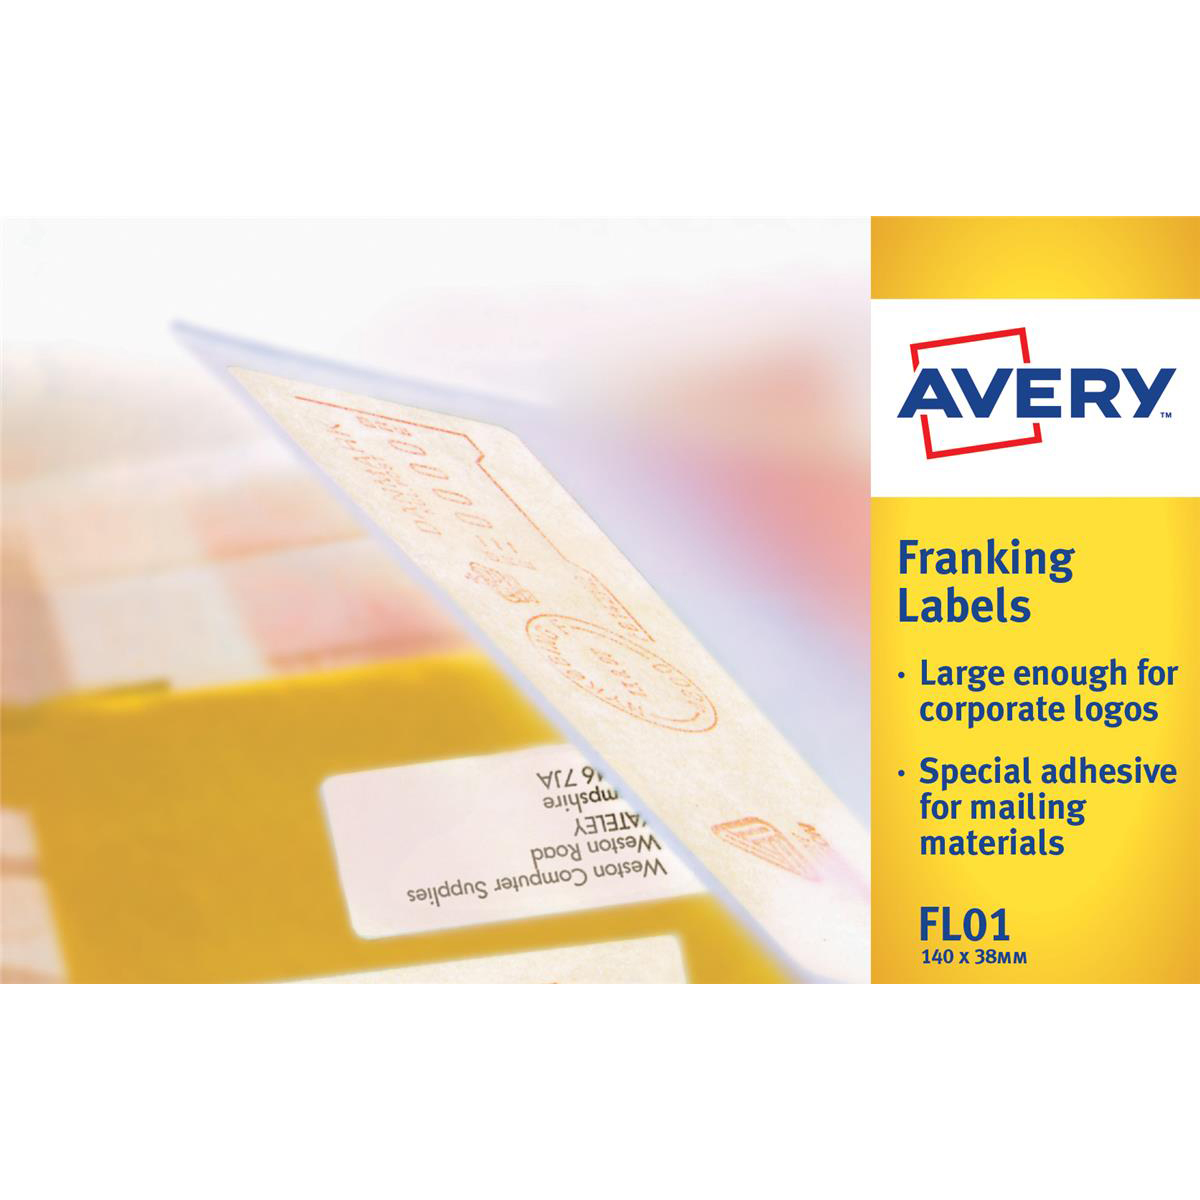 Franking Labels Avery Franking Labels 2 per sheet 140x38mm White Ref FL01 1000 Labels